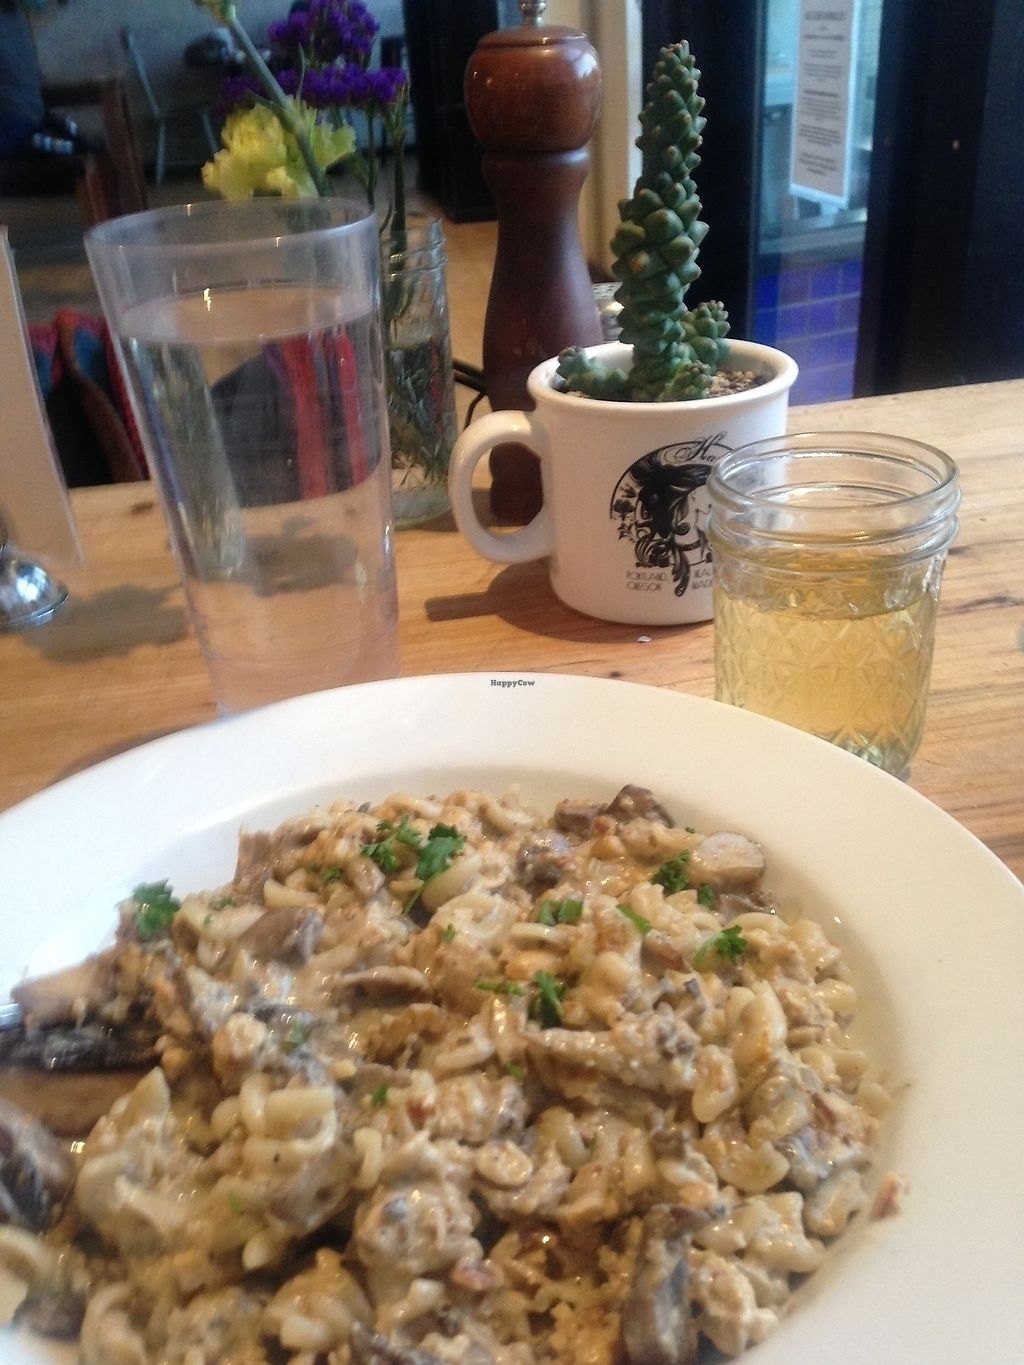 """Photo of Harlow  by <a href=""""/members/profile/Babbs1302"""">Babbs1302</a> <br/>Mushroom stroganoff: delicious and creamy <br/> February 14, 2018  - <a href='/contact/abuse/image/40043/359376'>Report</a>"""